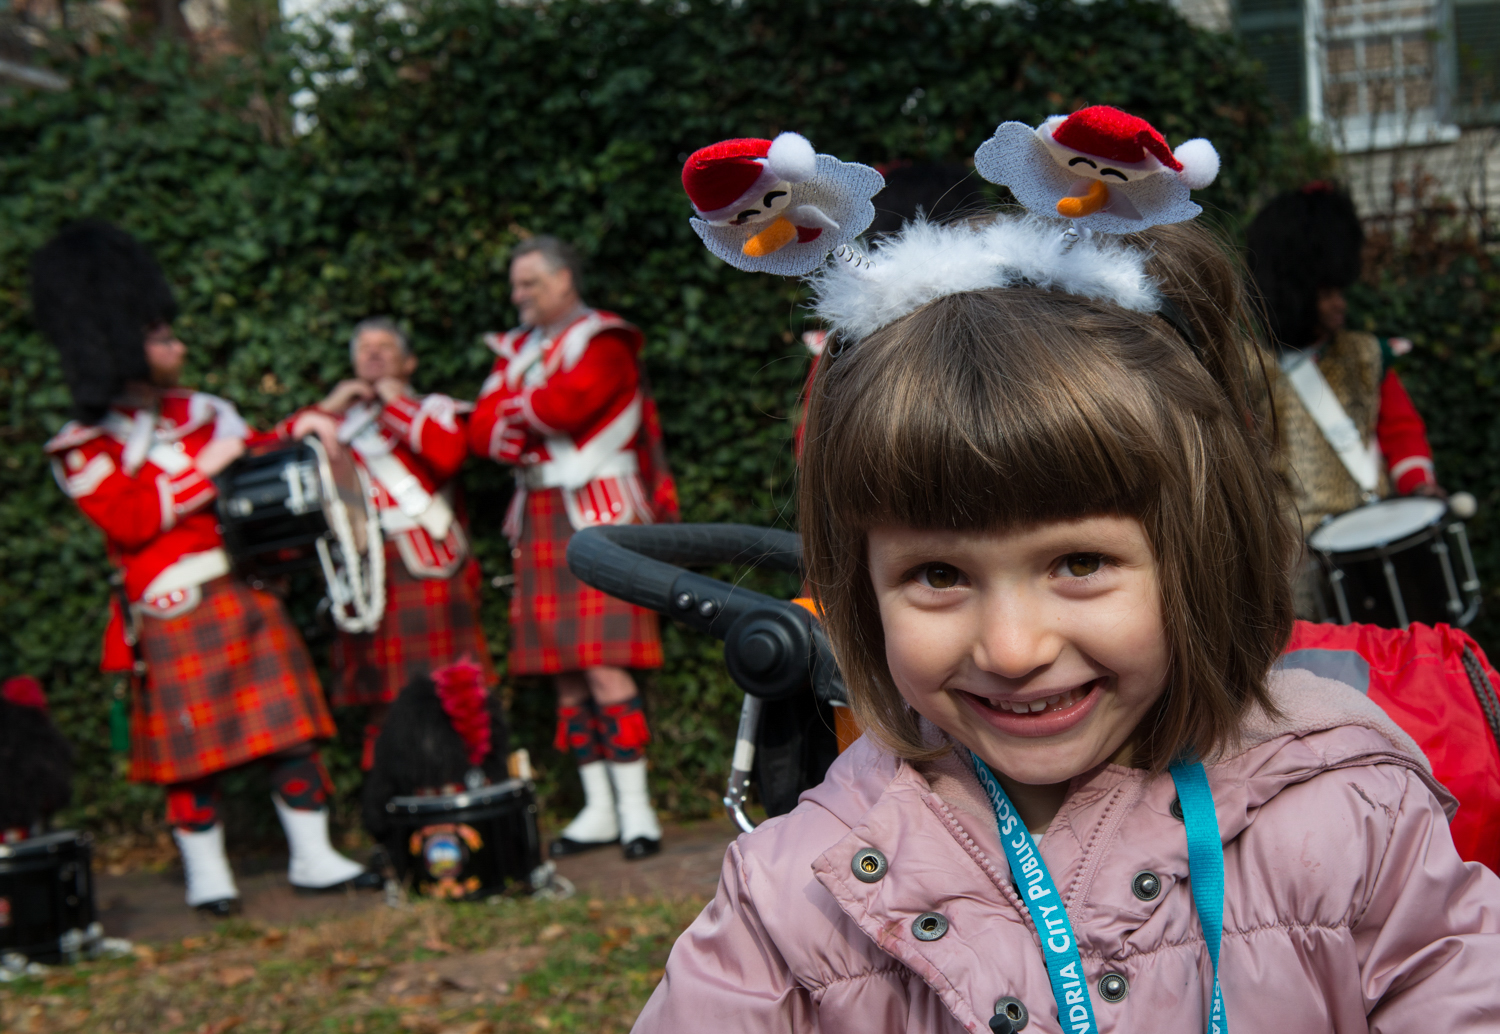 elementary school-age girl with Scottish bagpipe players in the background